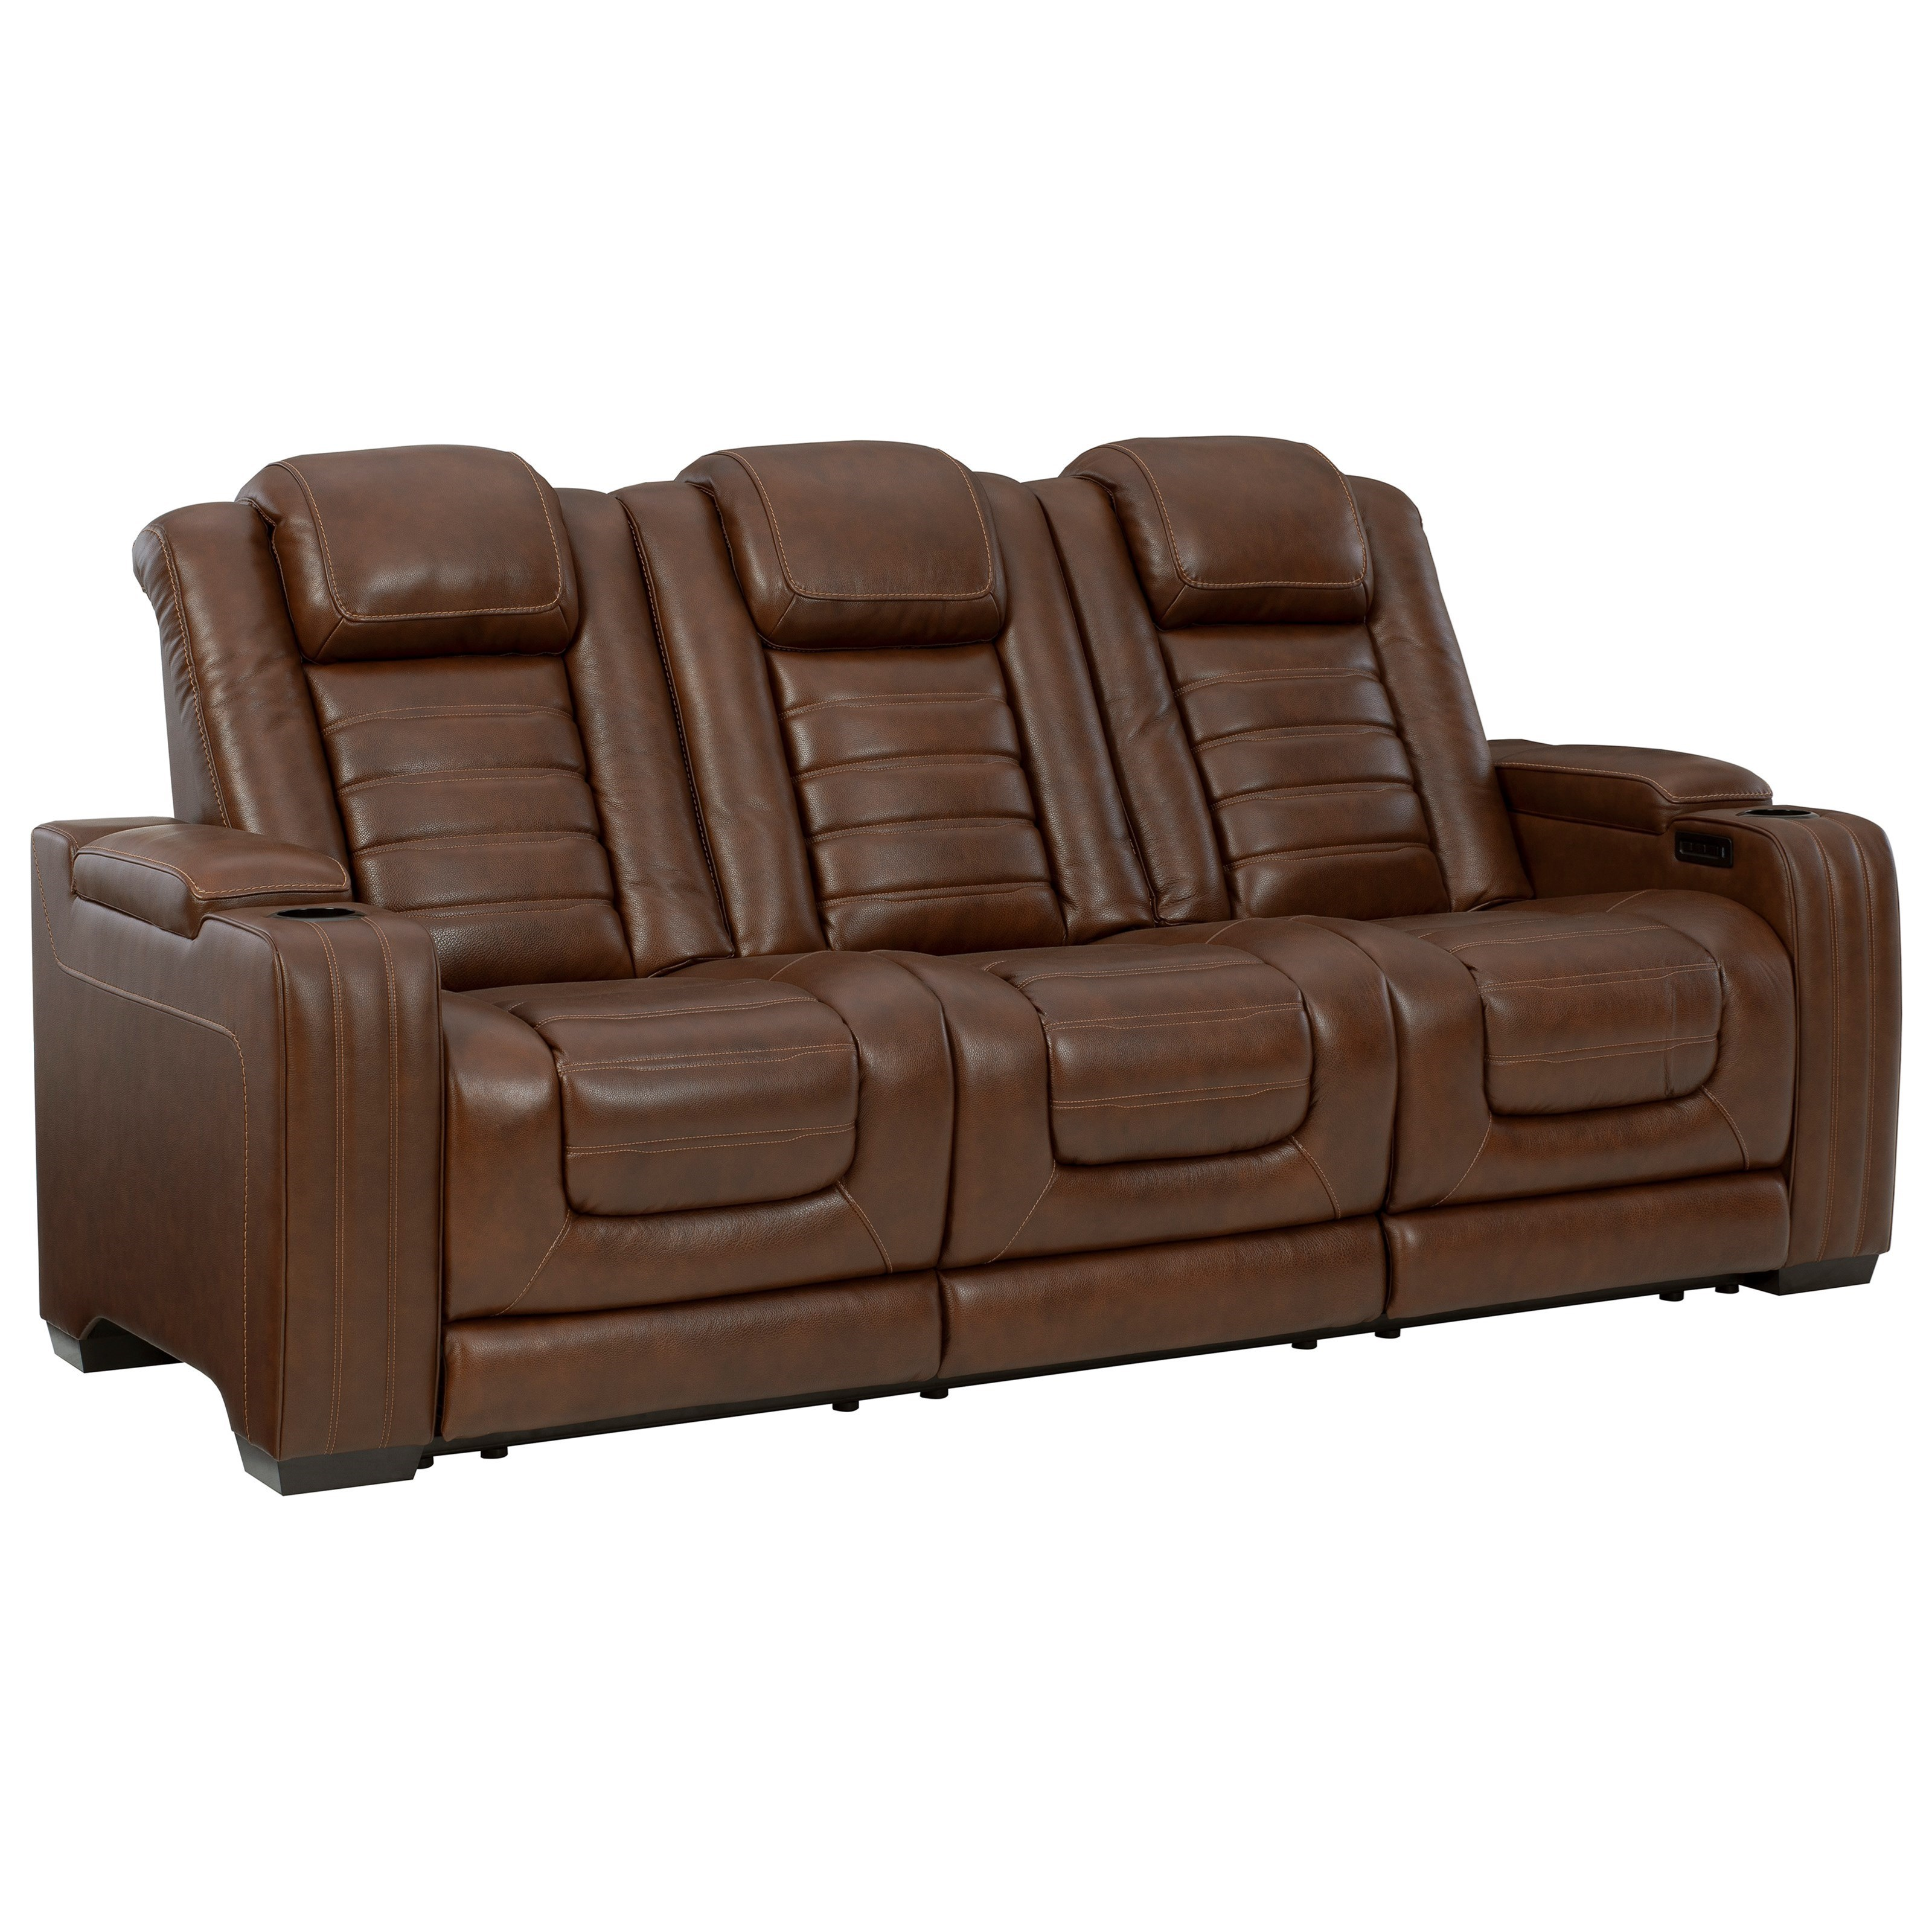 Backtrack Power Reclining Sofa by Signature Design by Ashley at Beck's Furniture